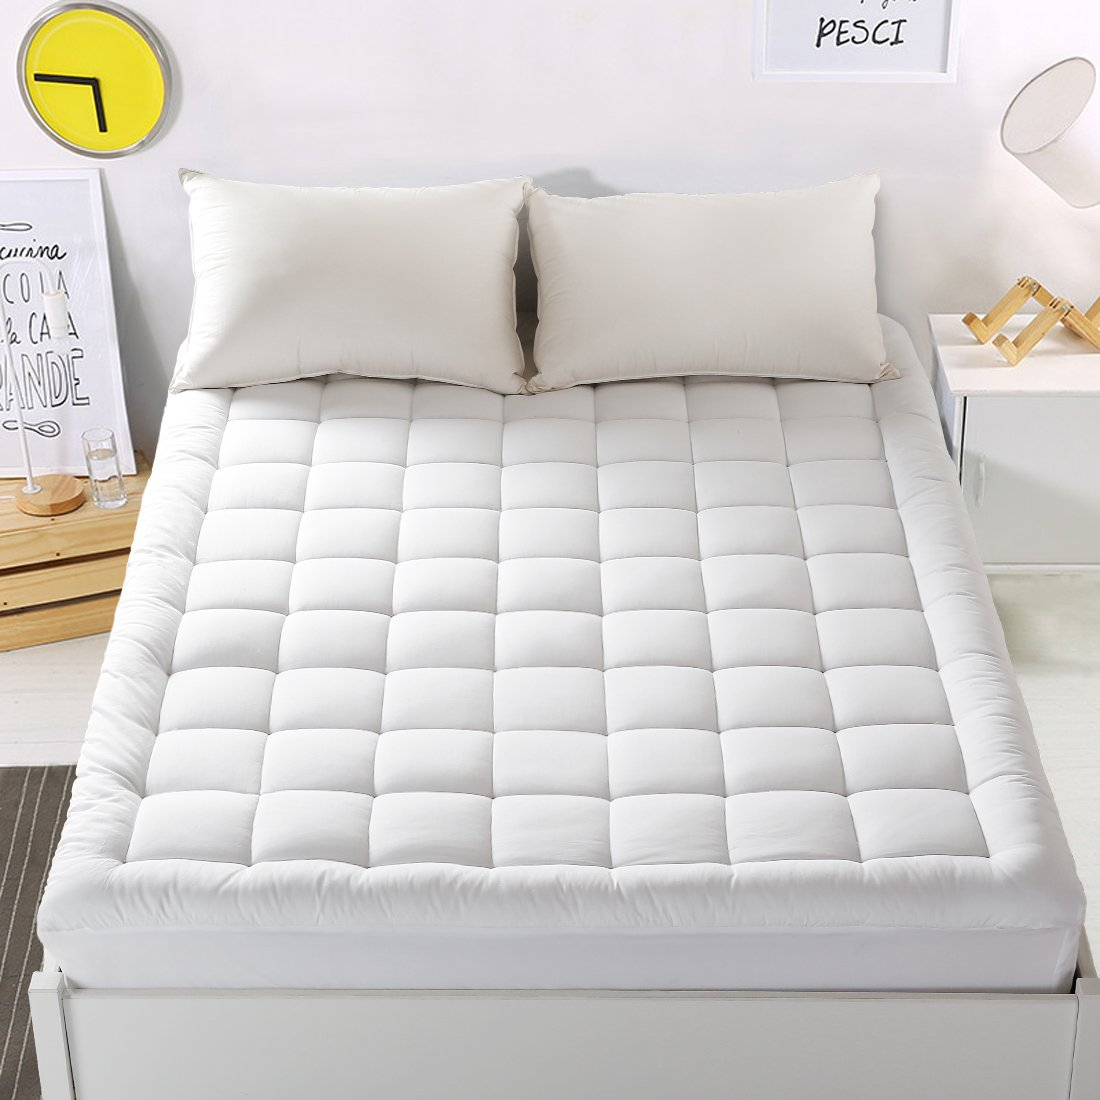 "Mattress Pad Cover King Size Mattress Topper with 18"" Deep Pocket Pillowtop Overfilled 100% 300TC Cotton White Bed Topper"